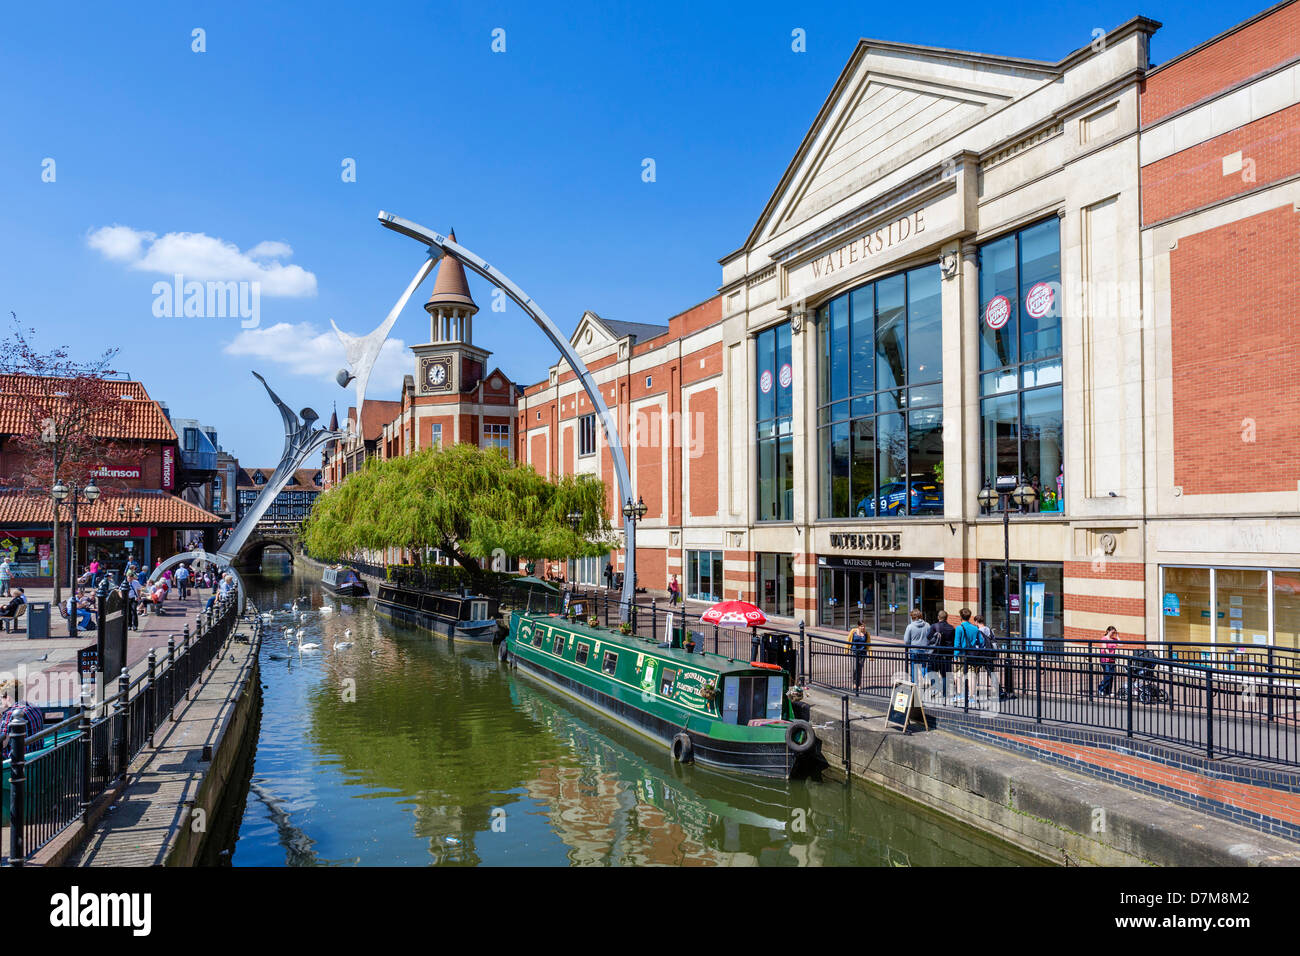 Narrowboat on the River Witham outside the Waterside Shopping Centre in the city centre, Lincoln, Lincolnshire, - Stock Image